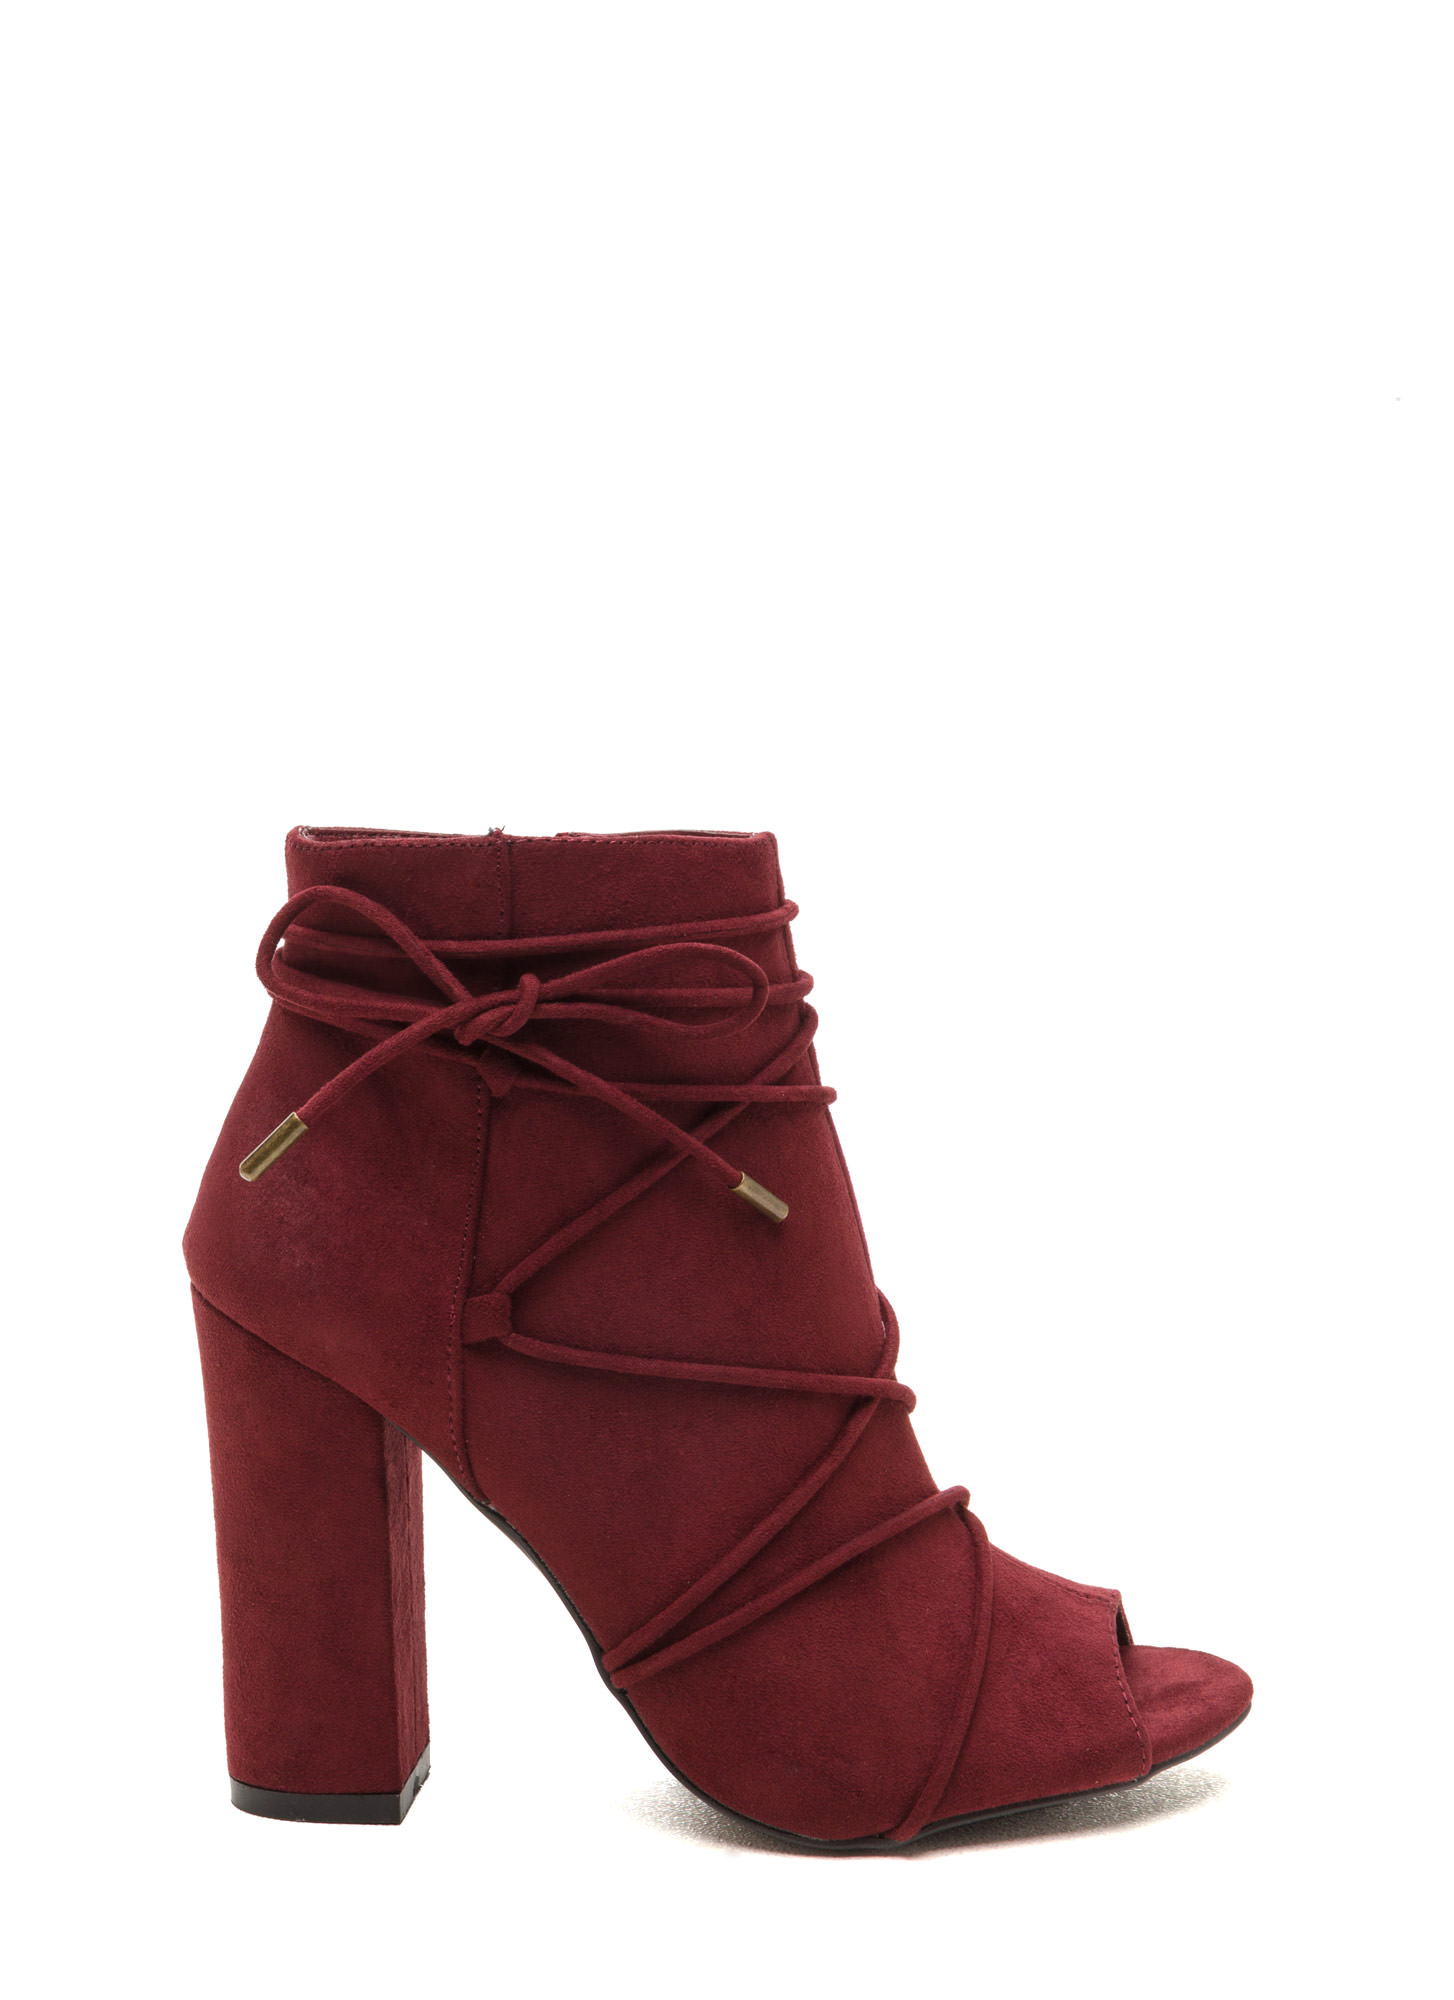 Easy Strut Lace-Up Faux Suede Booties BURGUNDY